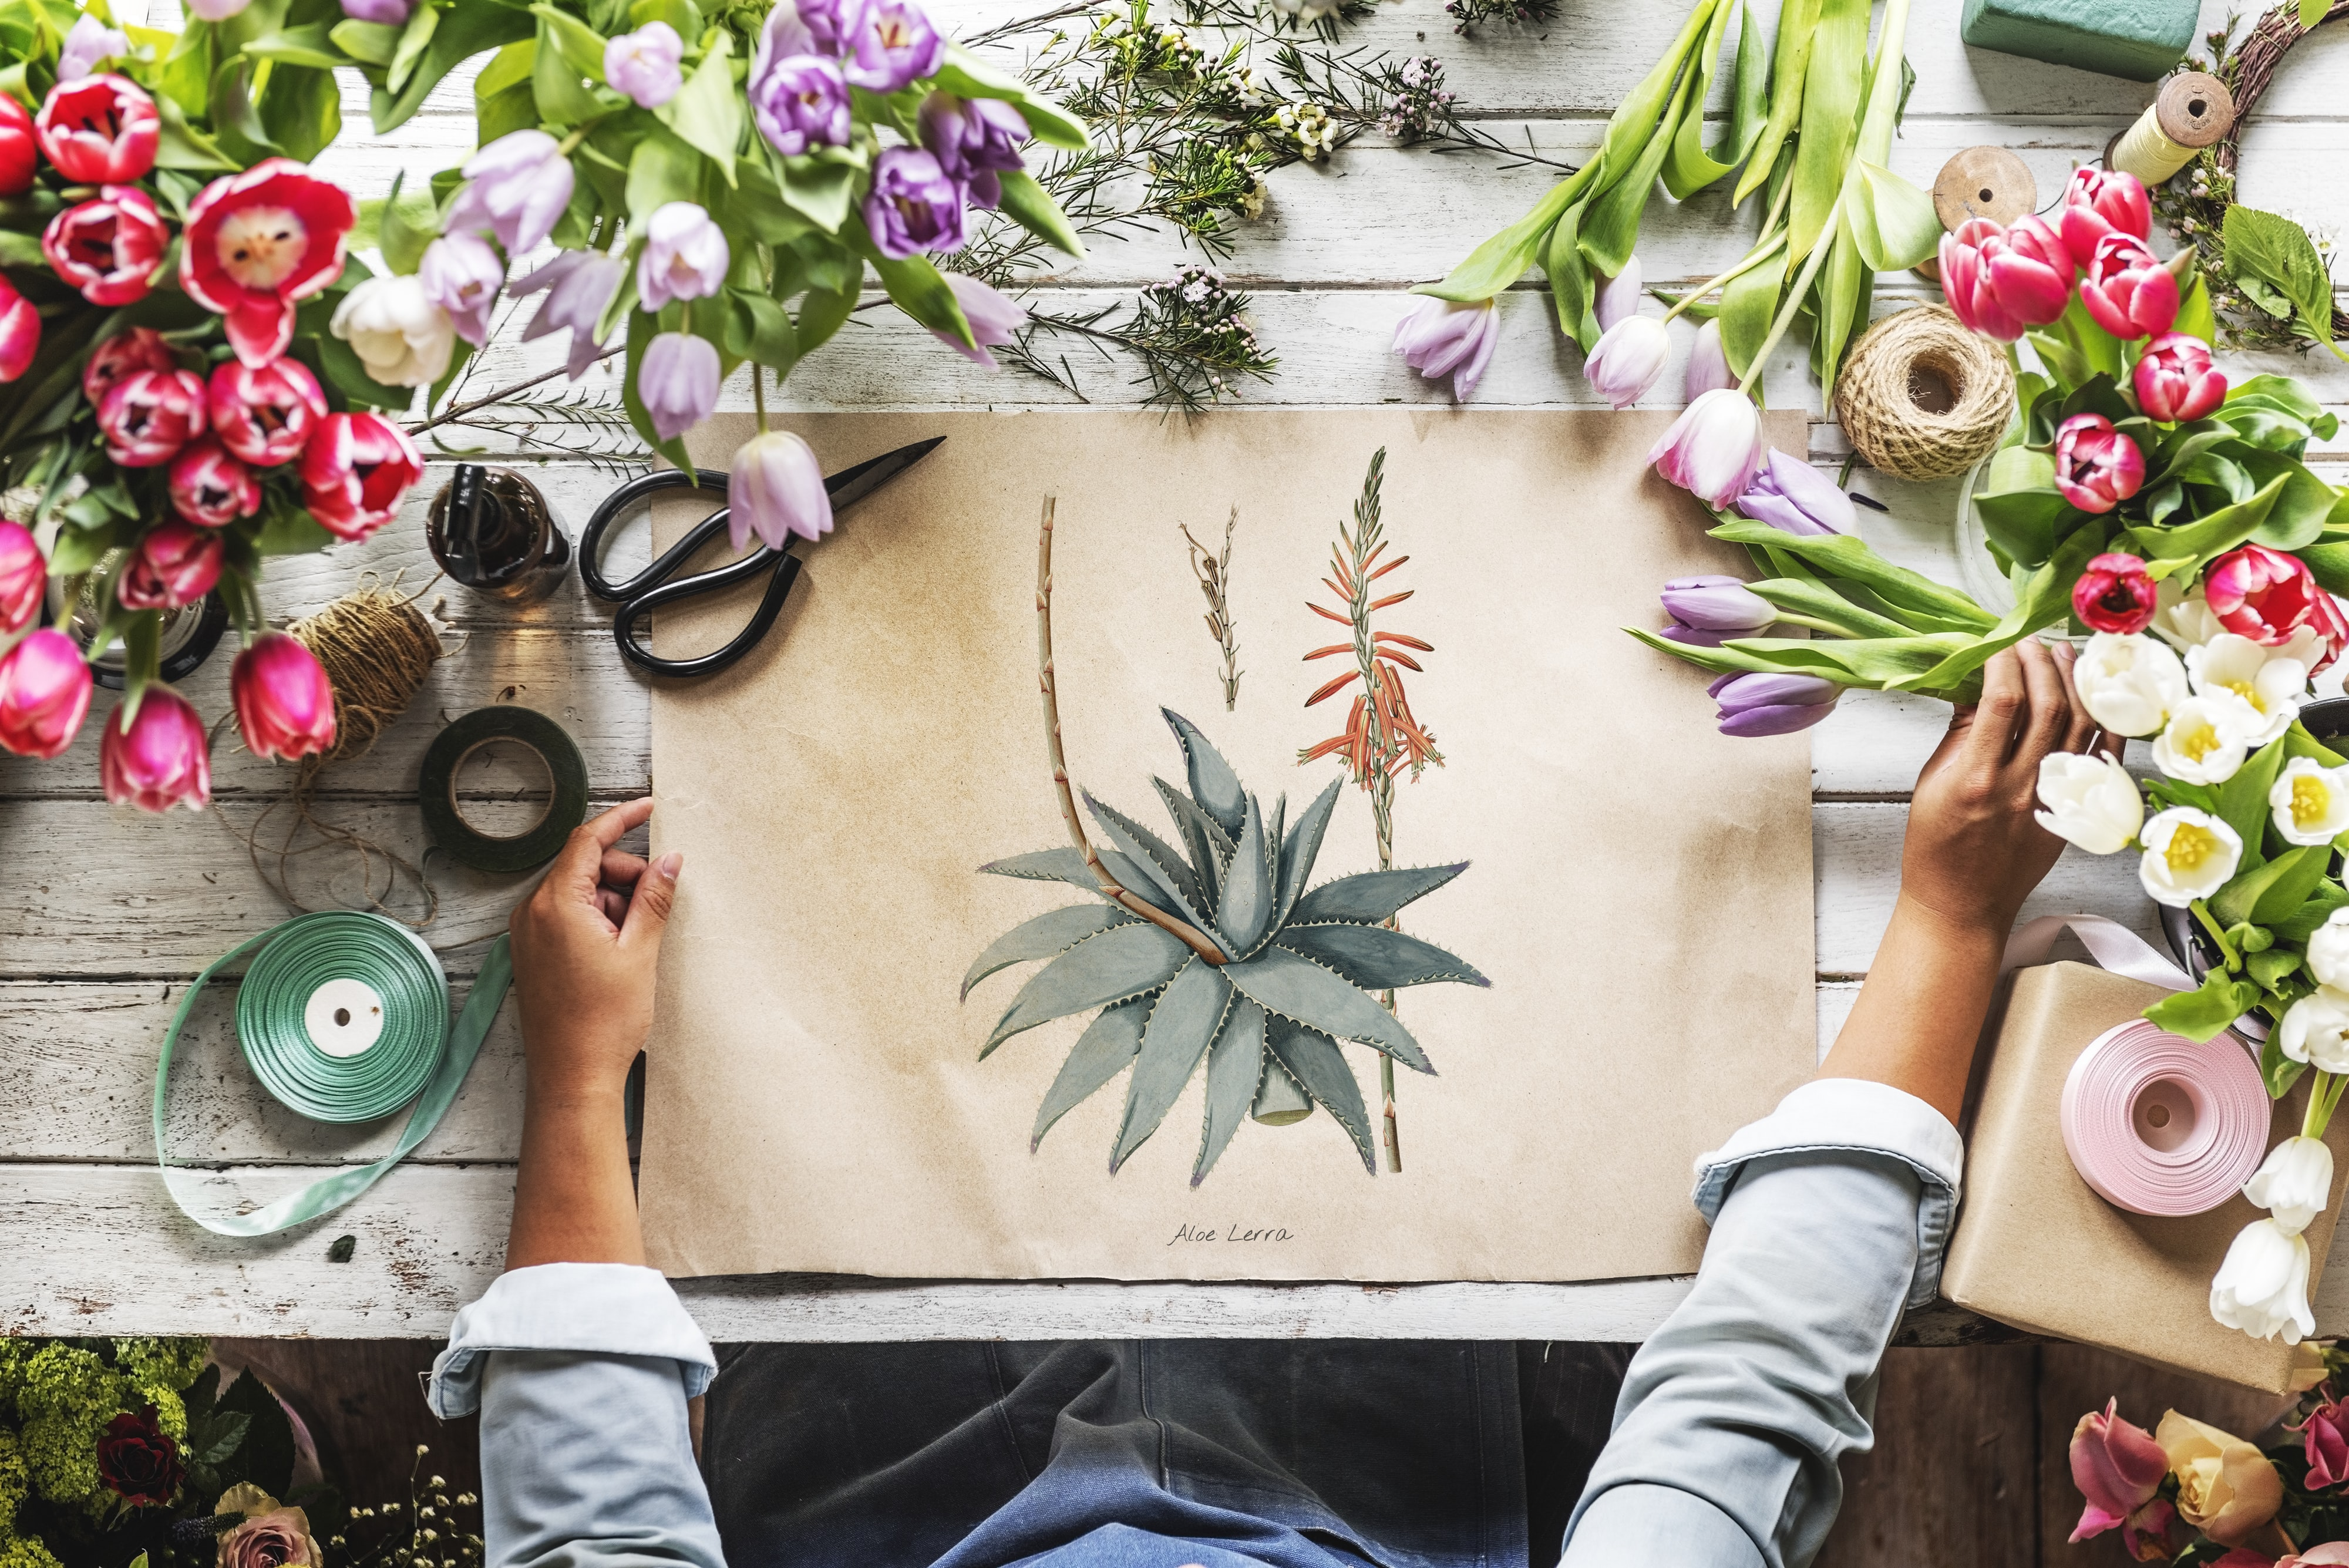 person in gray top painting flowers